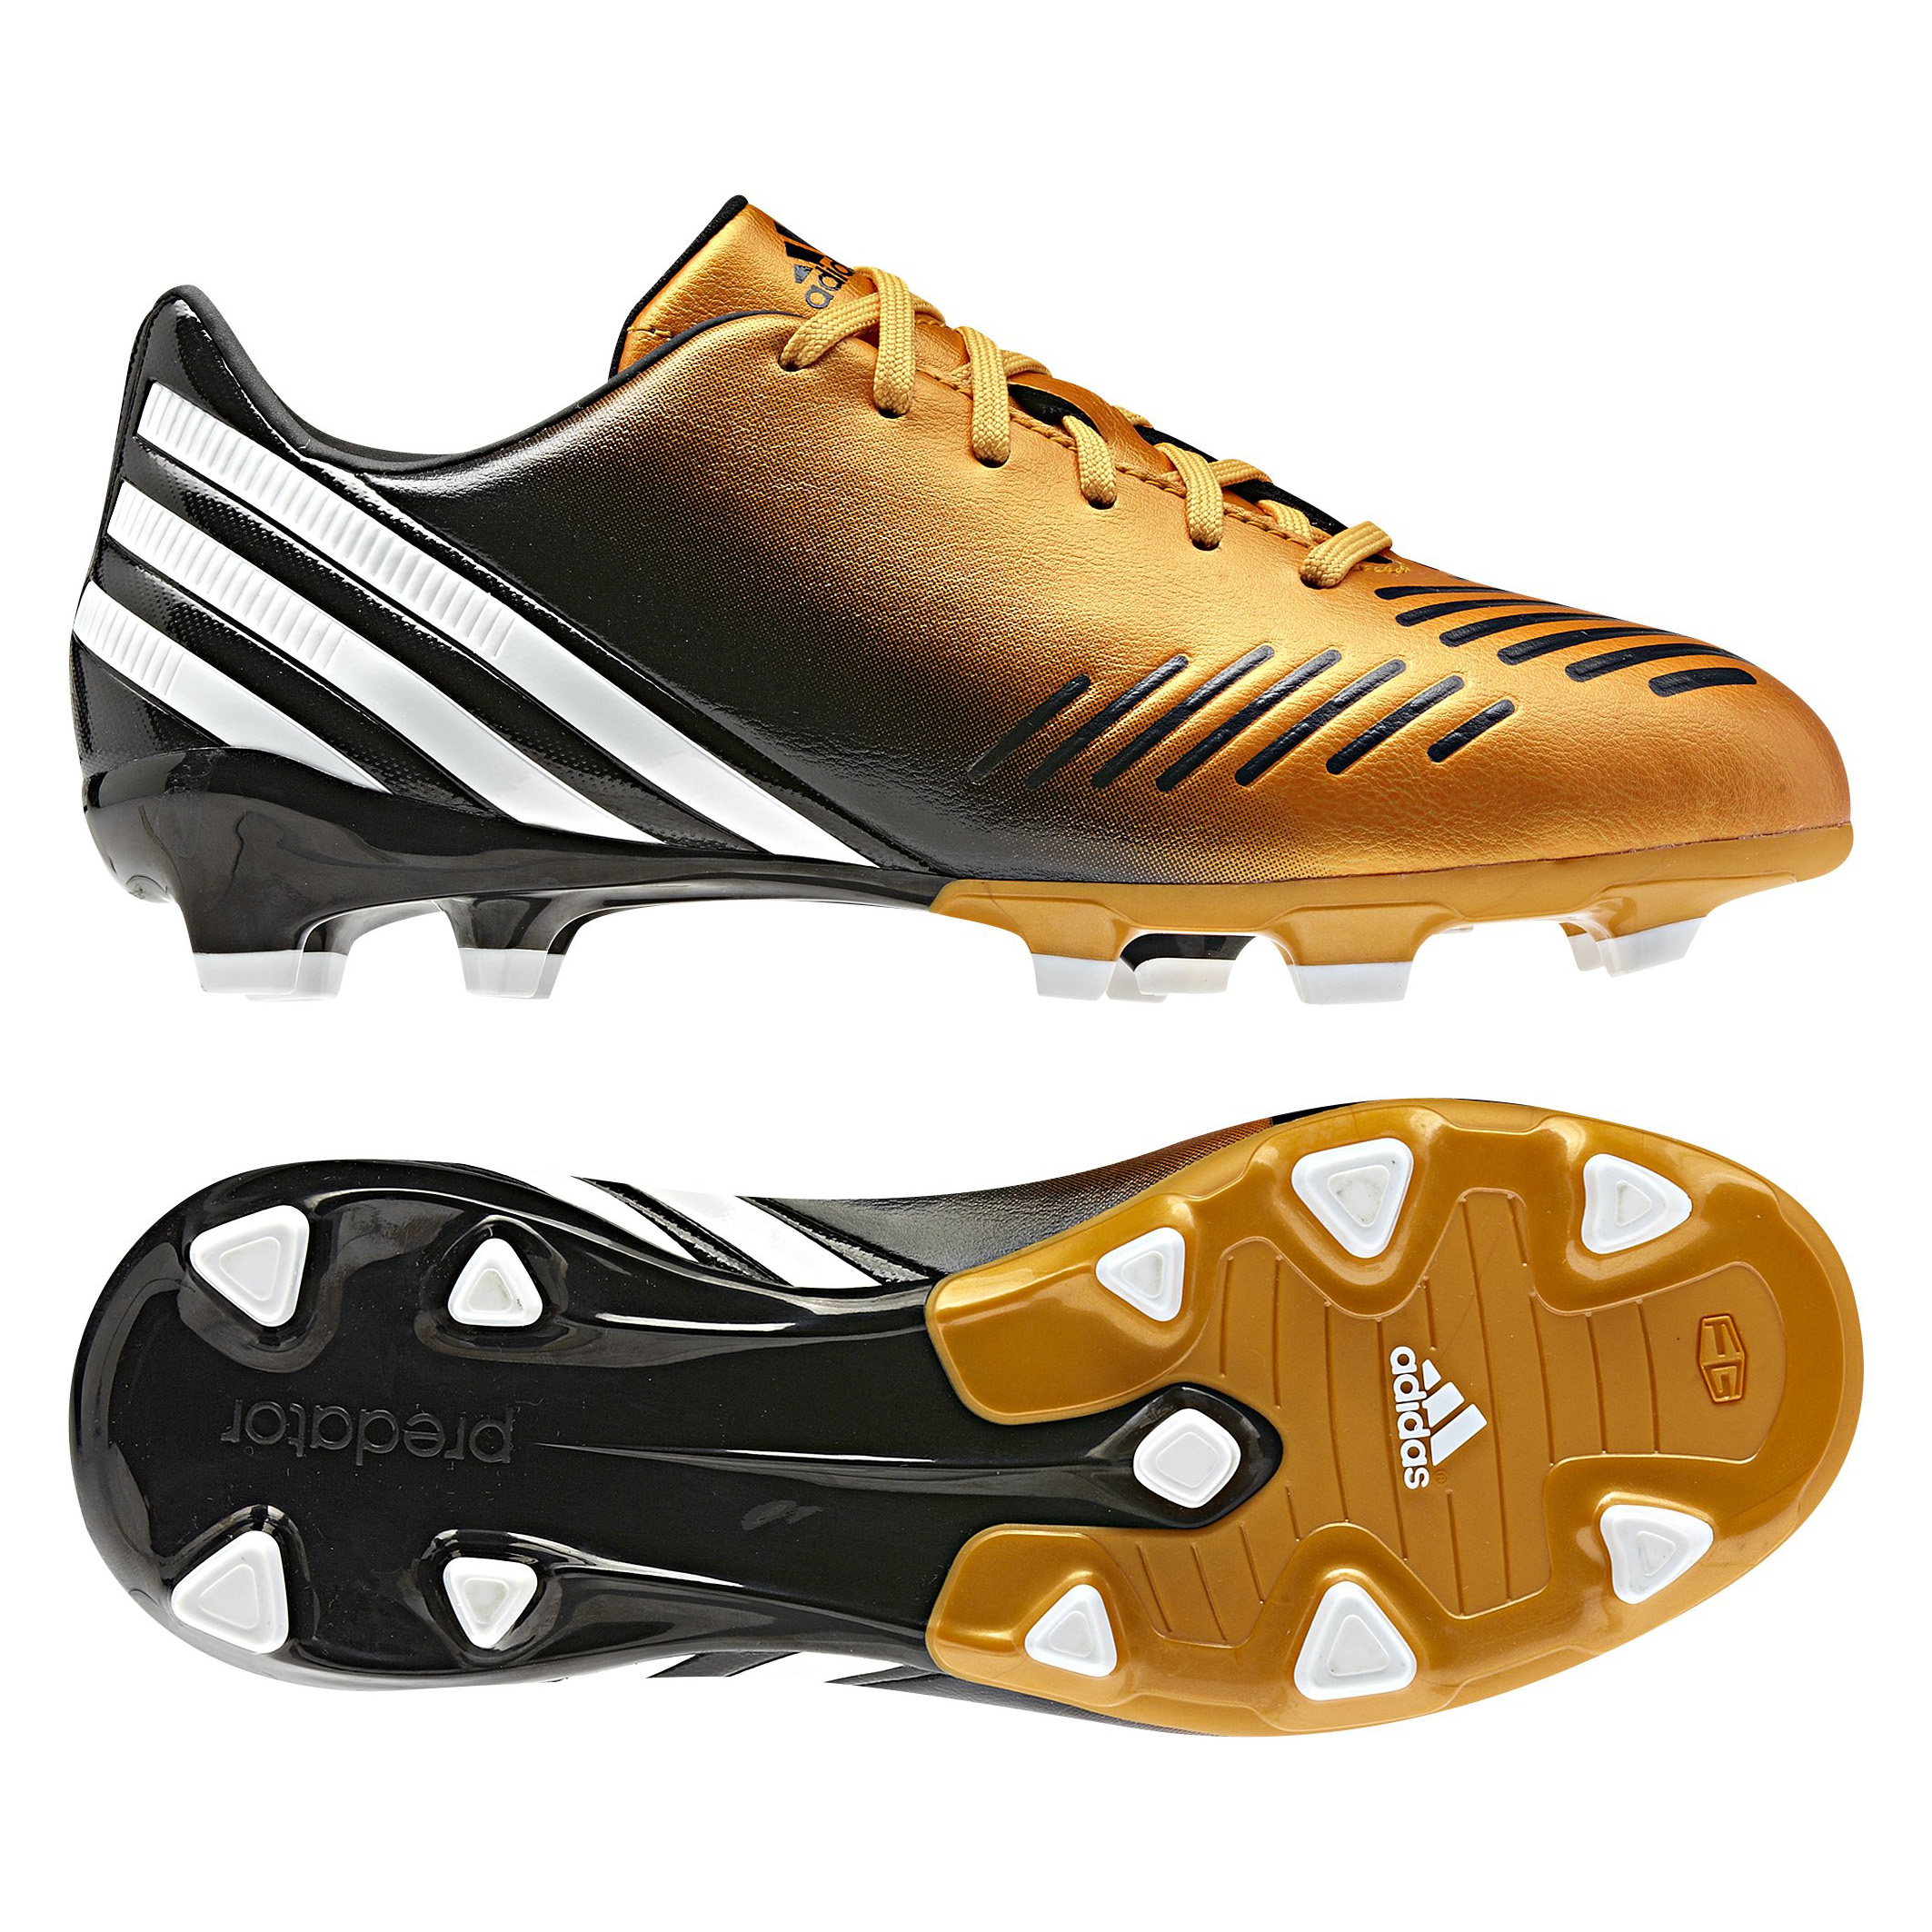 Adidas Predator Absolado LZ TRX Firm Ground Football Boots - Bright Gold/Running White/Black - Kids